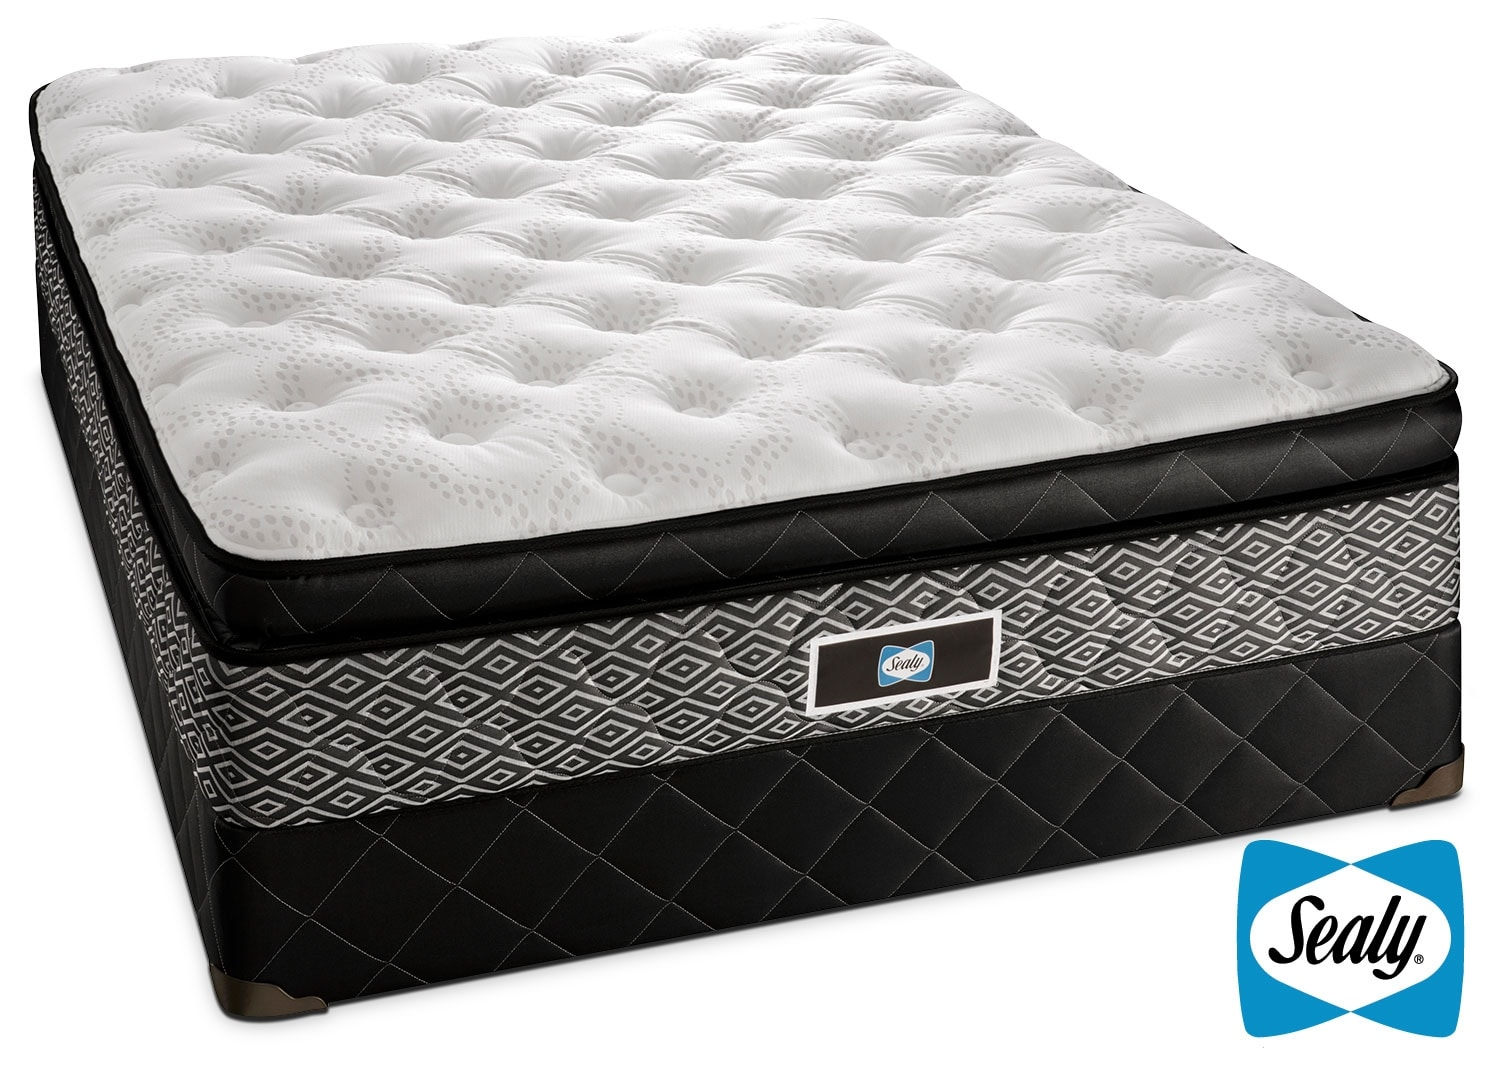 Sealy echo plush queen mattress boxspring set leon 39 s Mattress set sale queen